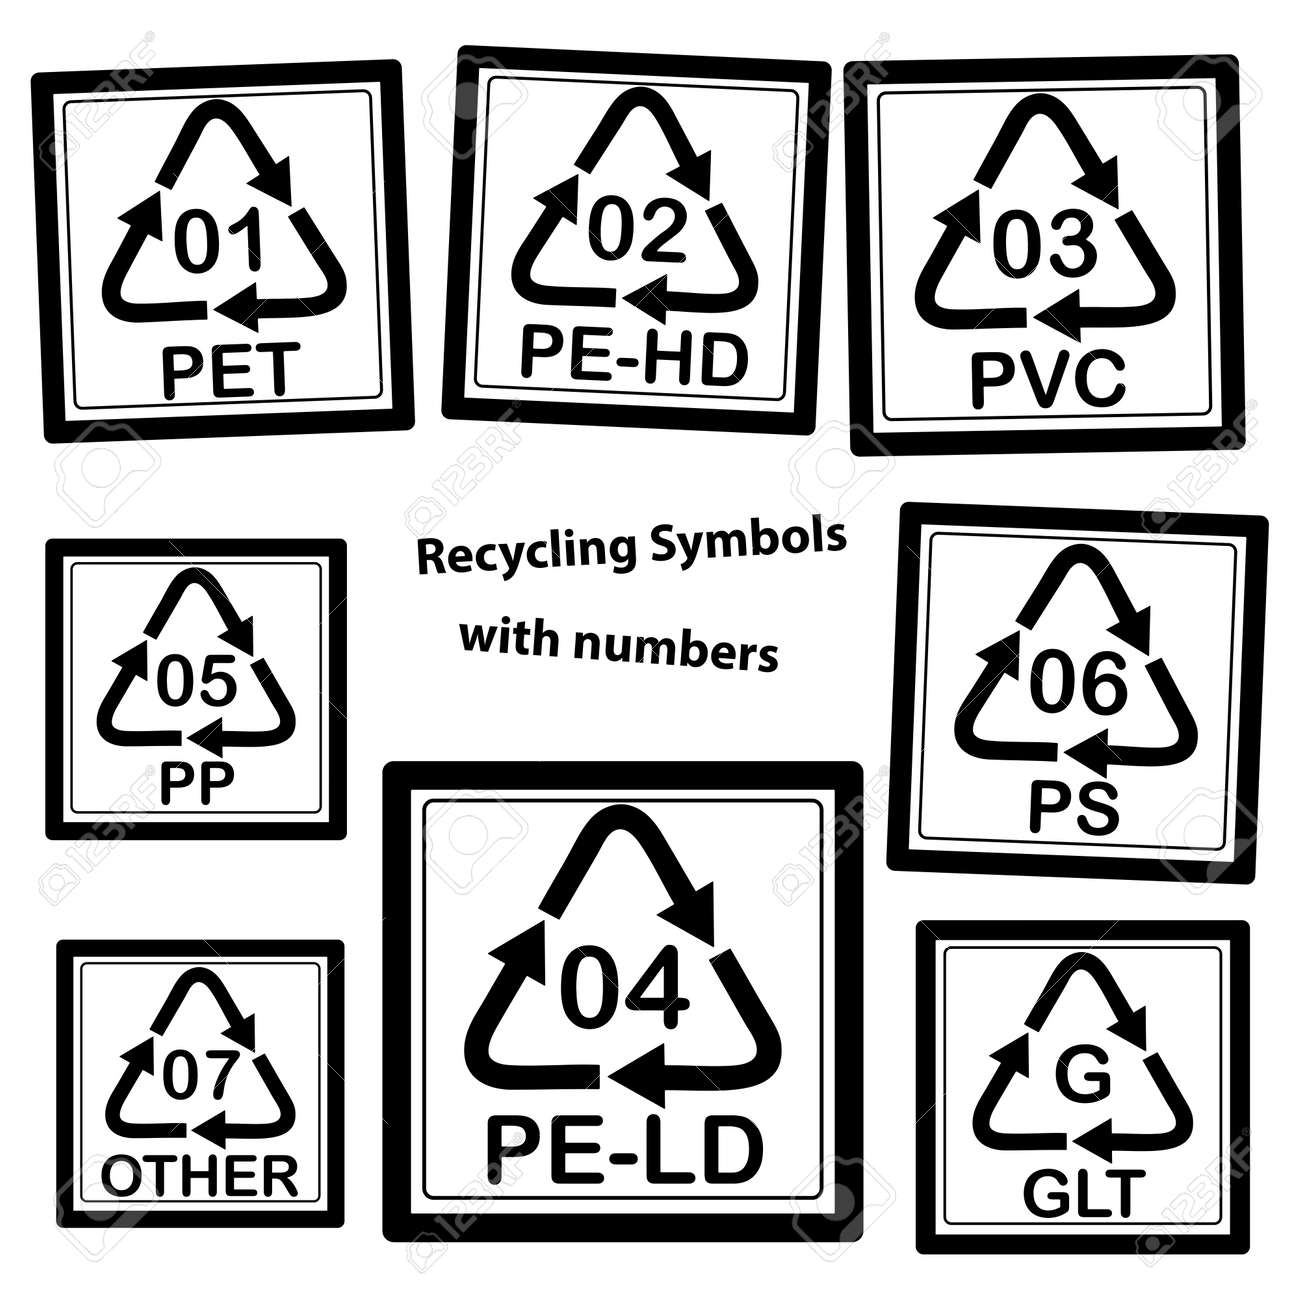 Recycling symbols with numbers for plastic isolated on white recycling symbols with numbers for plastic isolated on white background stock vector 37266786 biocorpaavc